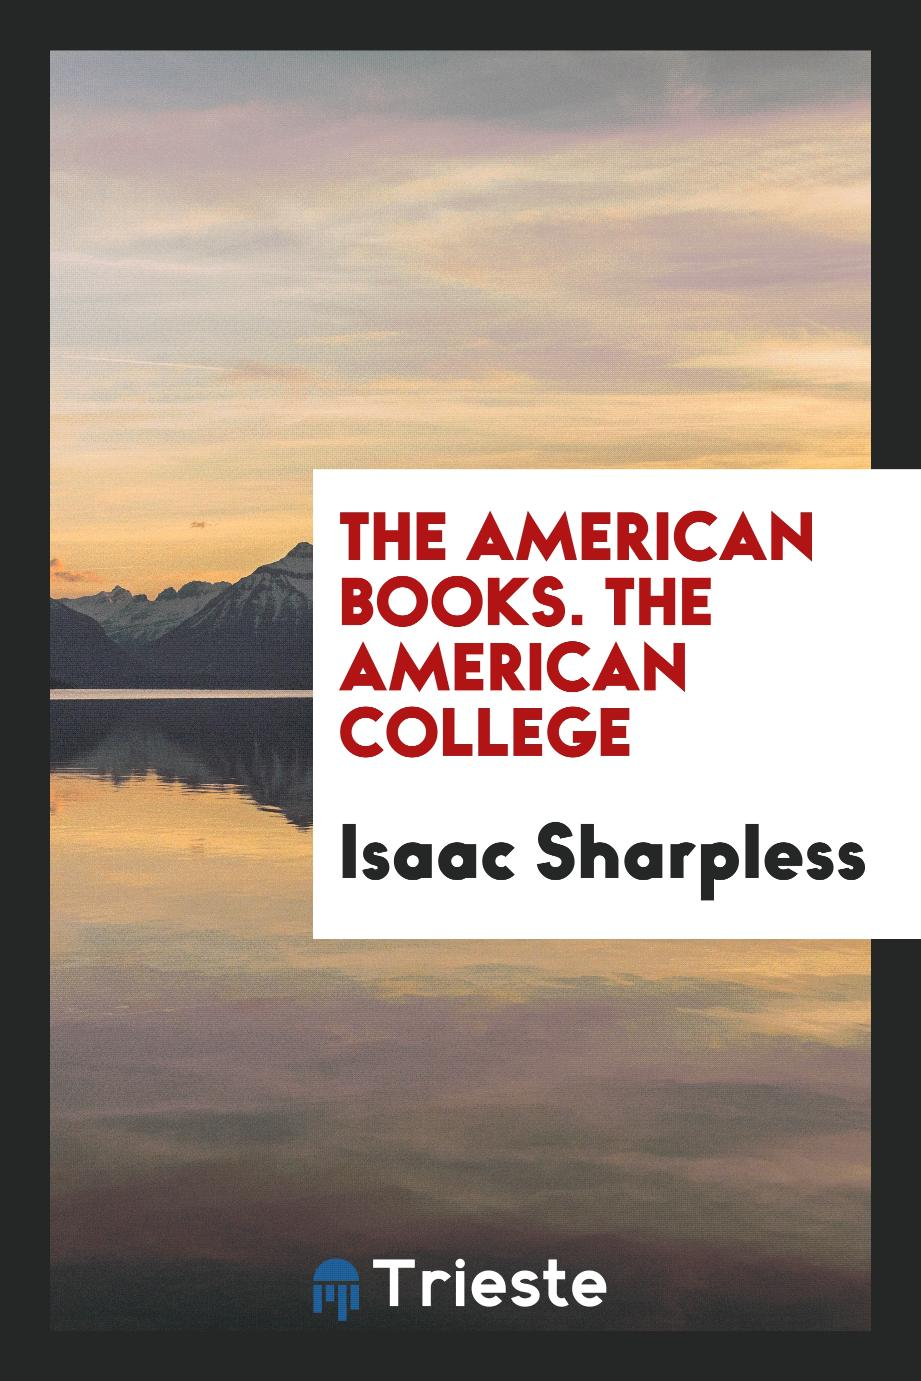 The American Books. The American College